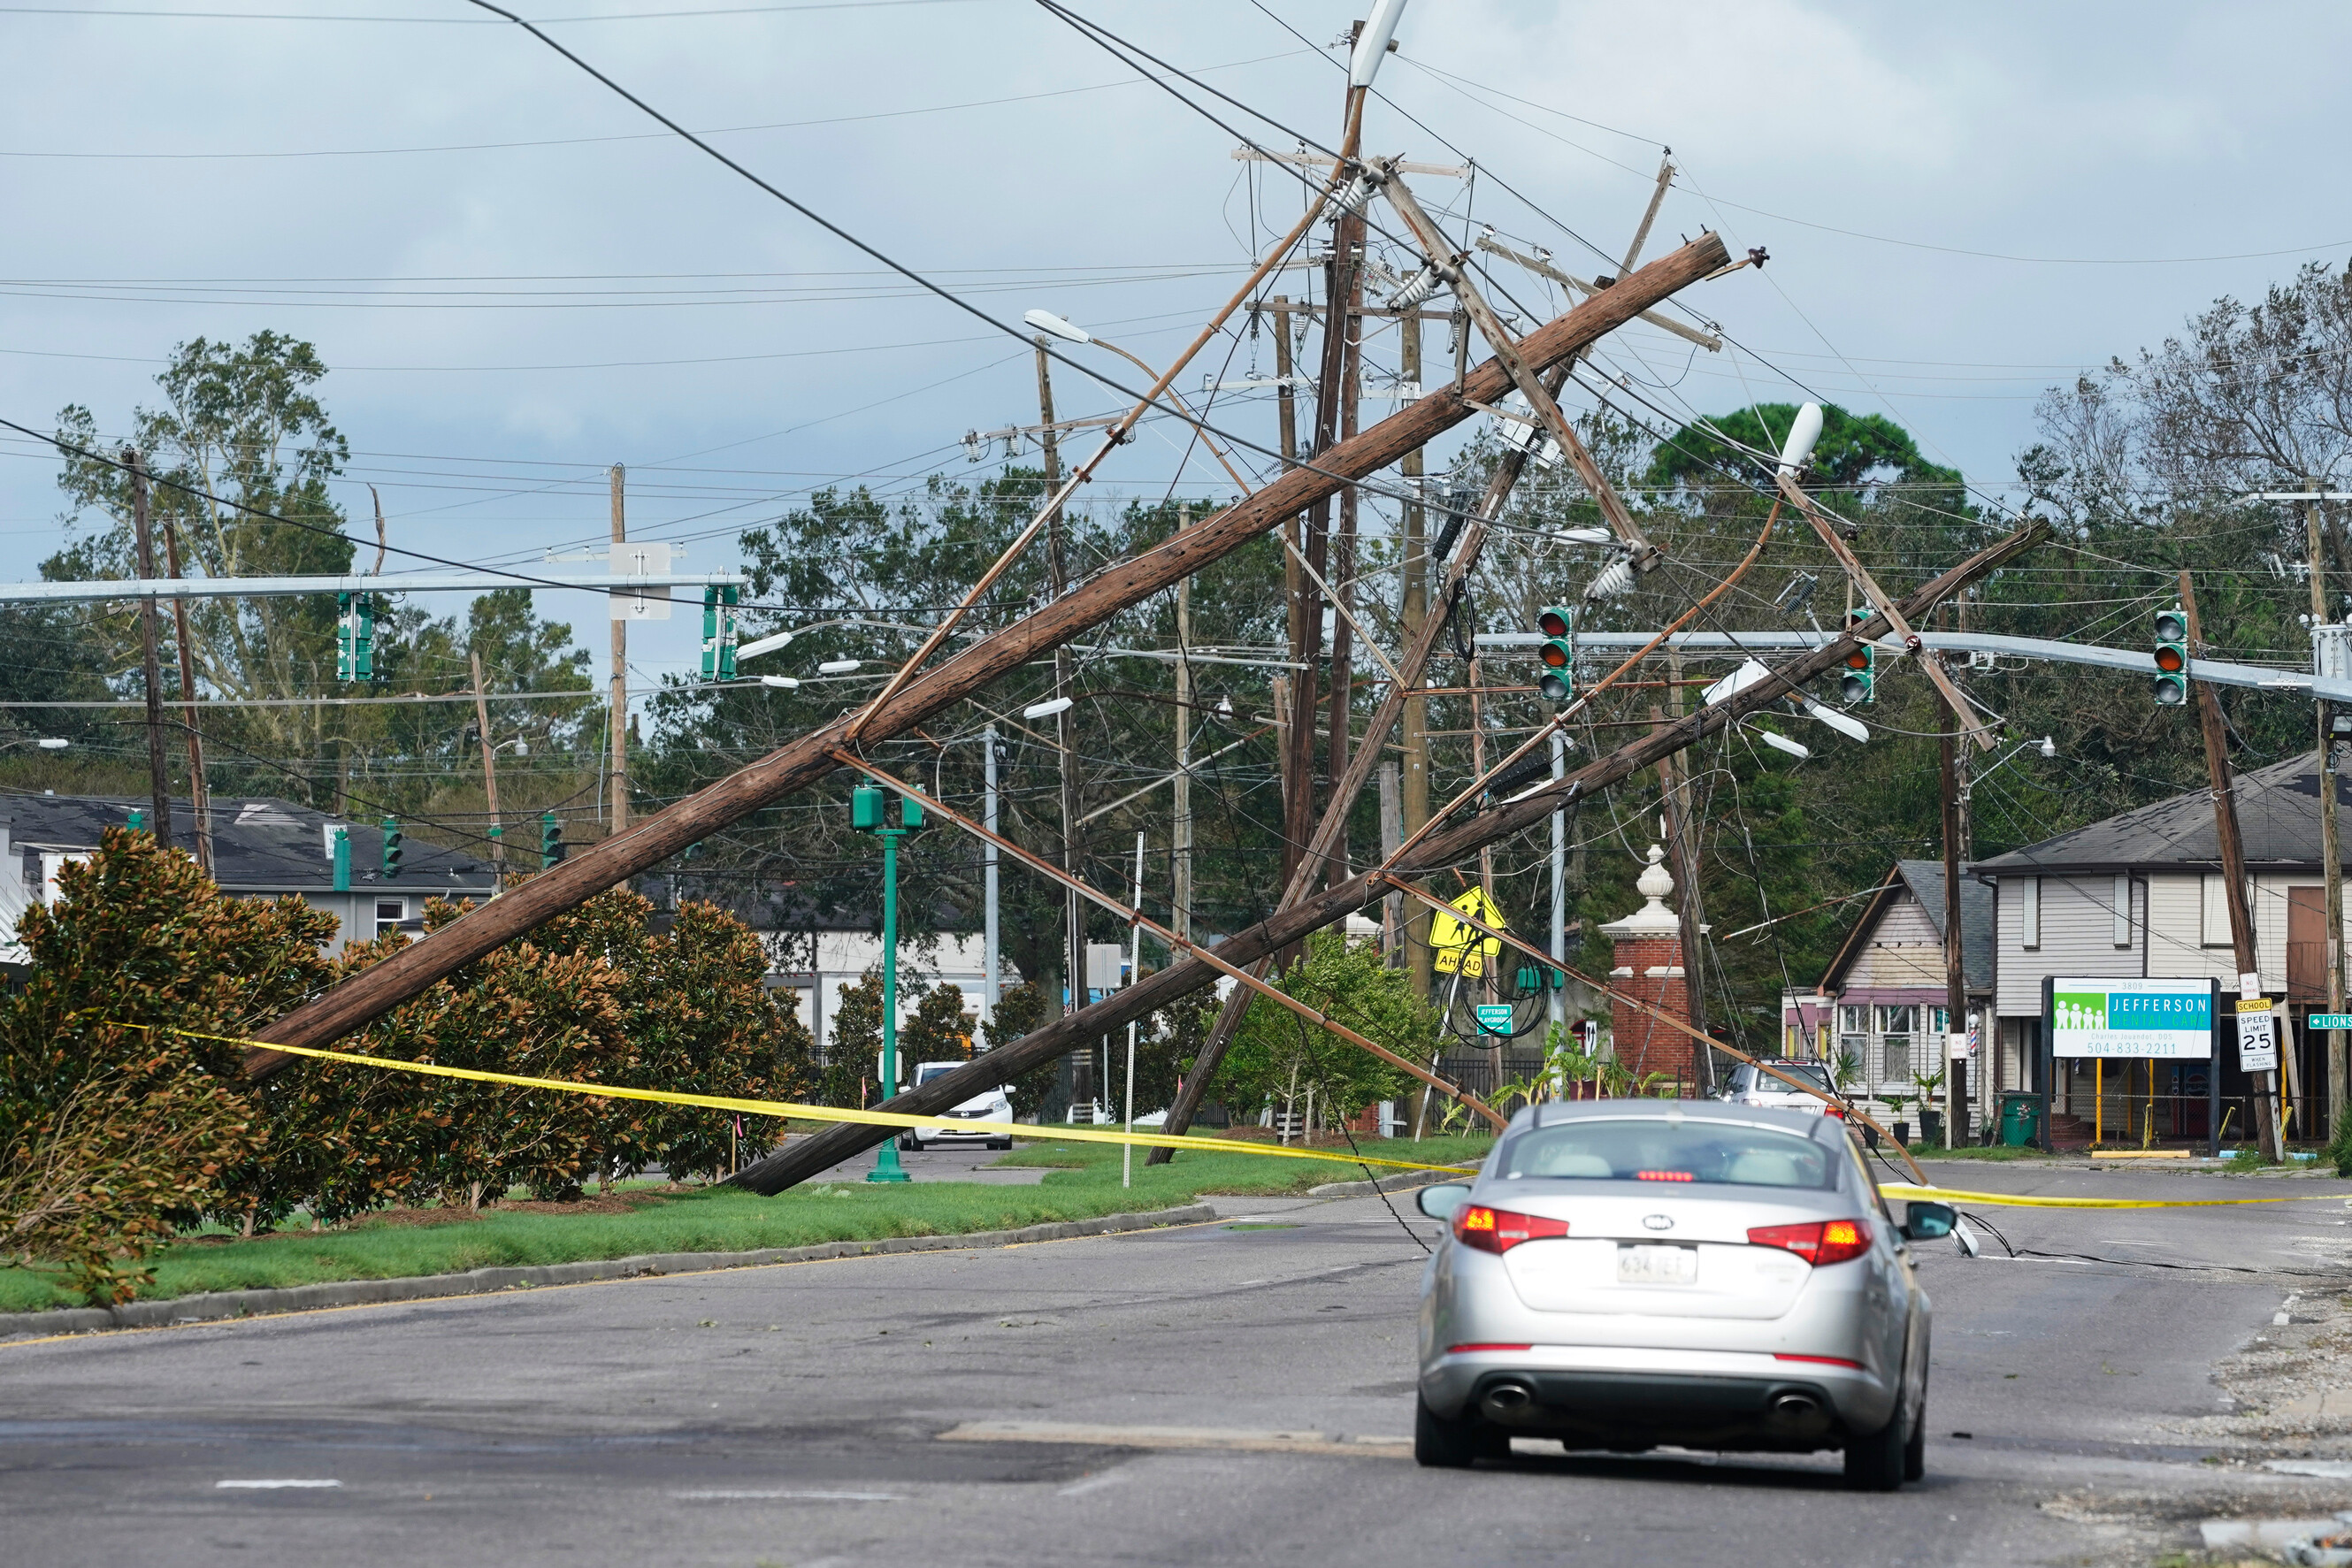 What weeks without power and water could look like for Ida storm victims